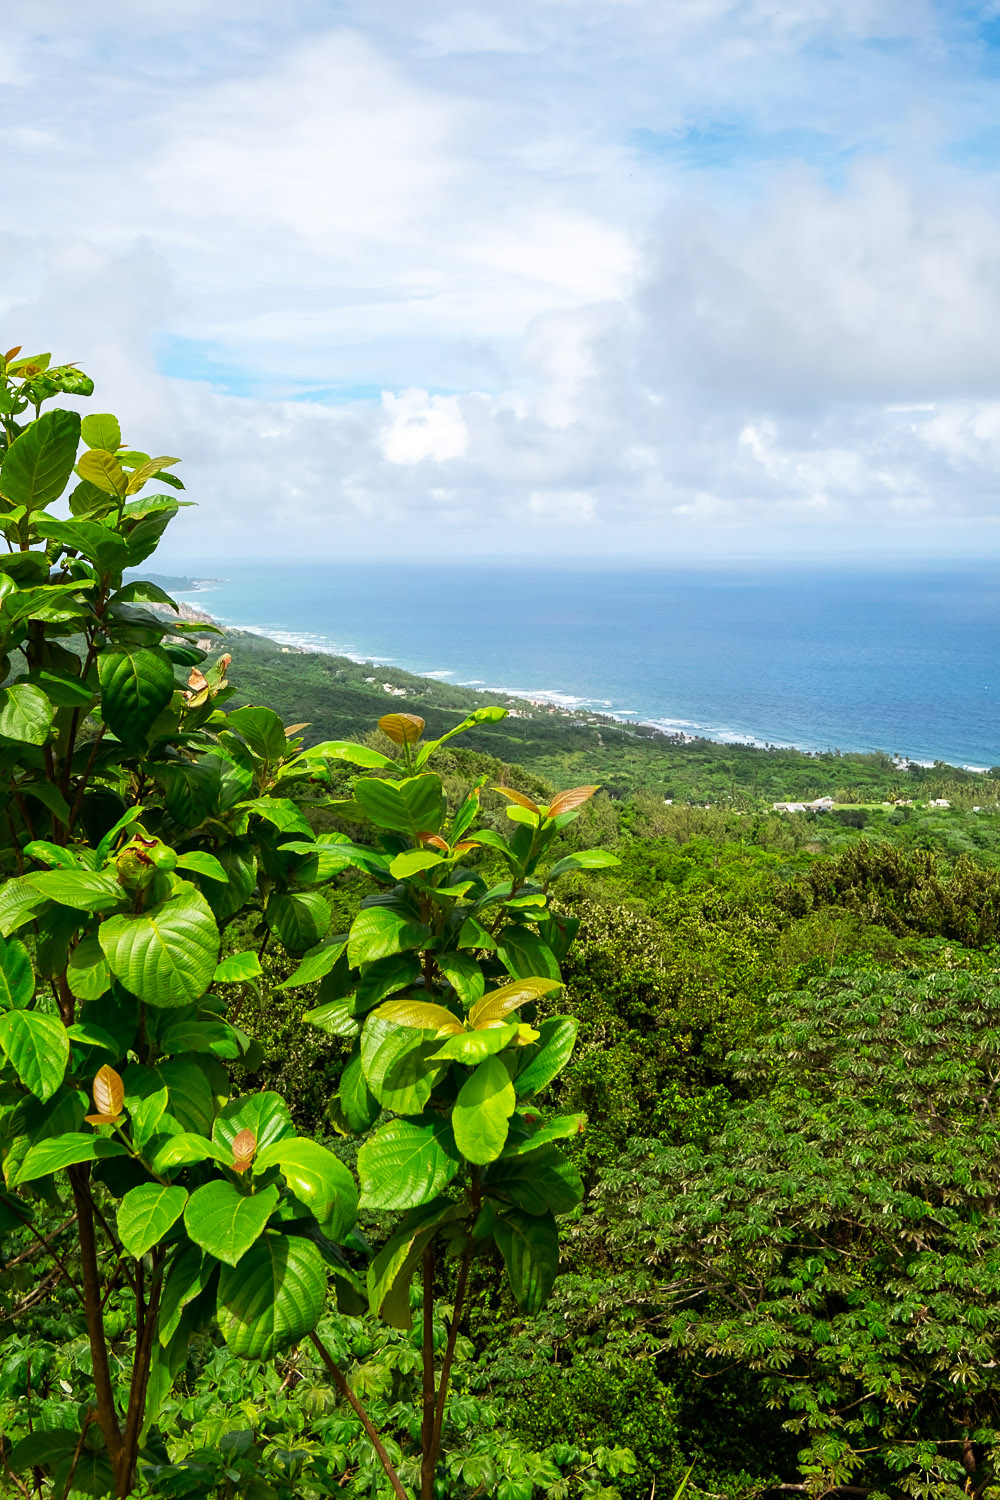 A tour of PEG Farm   A 5-Day Itinerary of What to See and Eat around Barbados